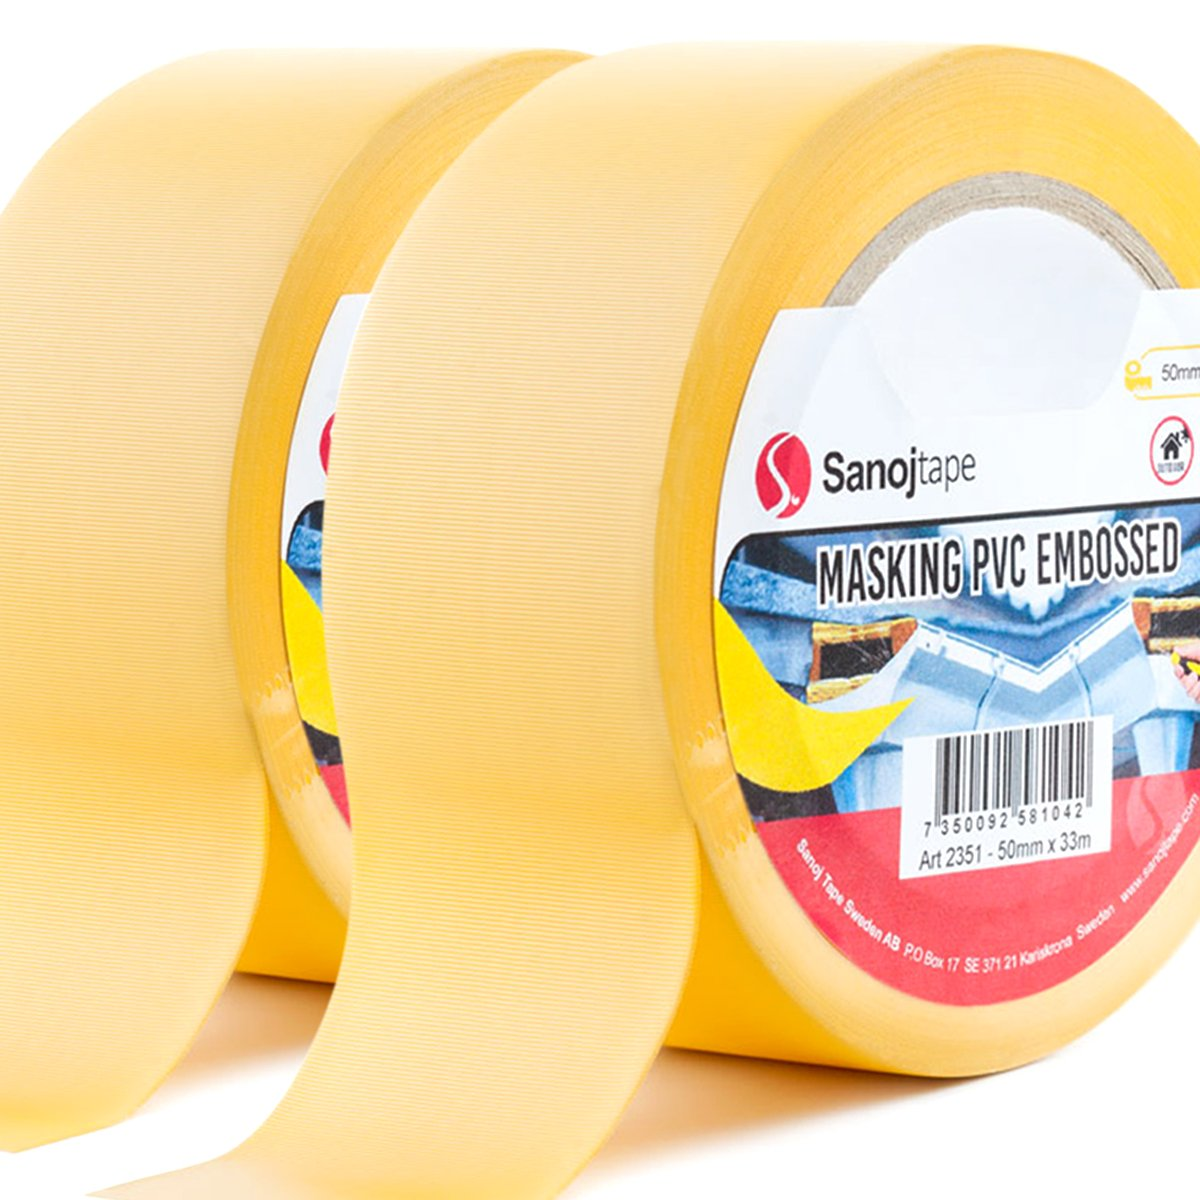 Sanojtape Plastering PVC Masking Tape (2-Pack) 50mm x 33m | Protection Embossed Masking Tape | Ideal for Rough Masking, Protection | Easy to Tear by Hand